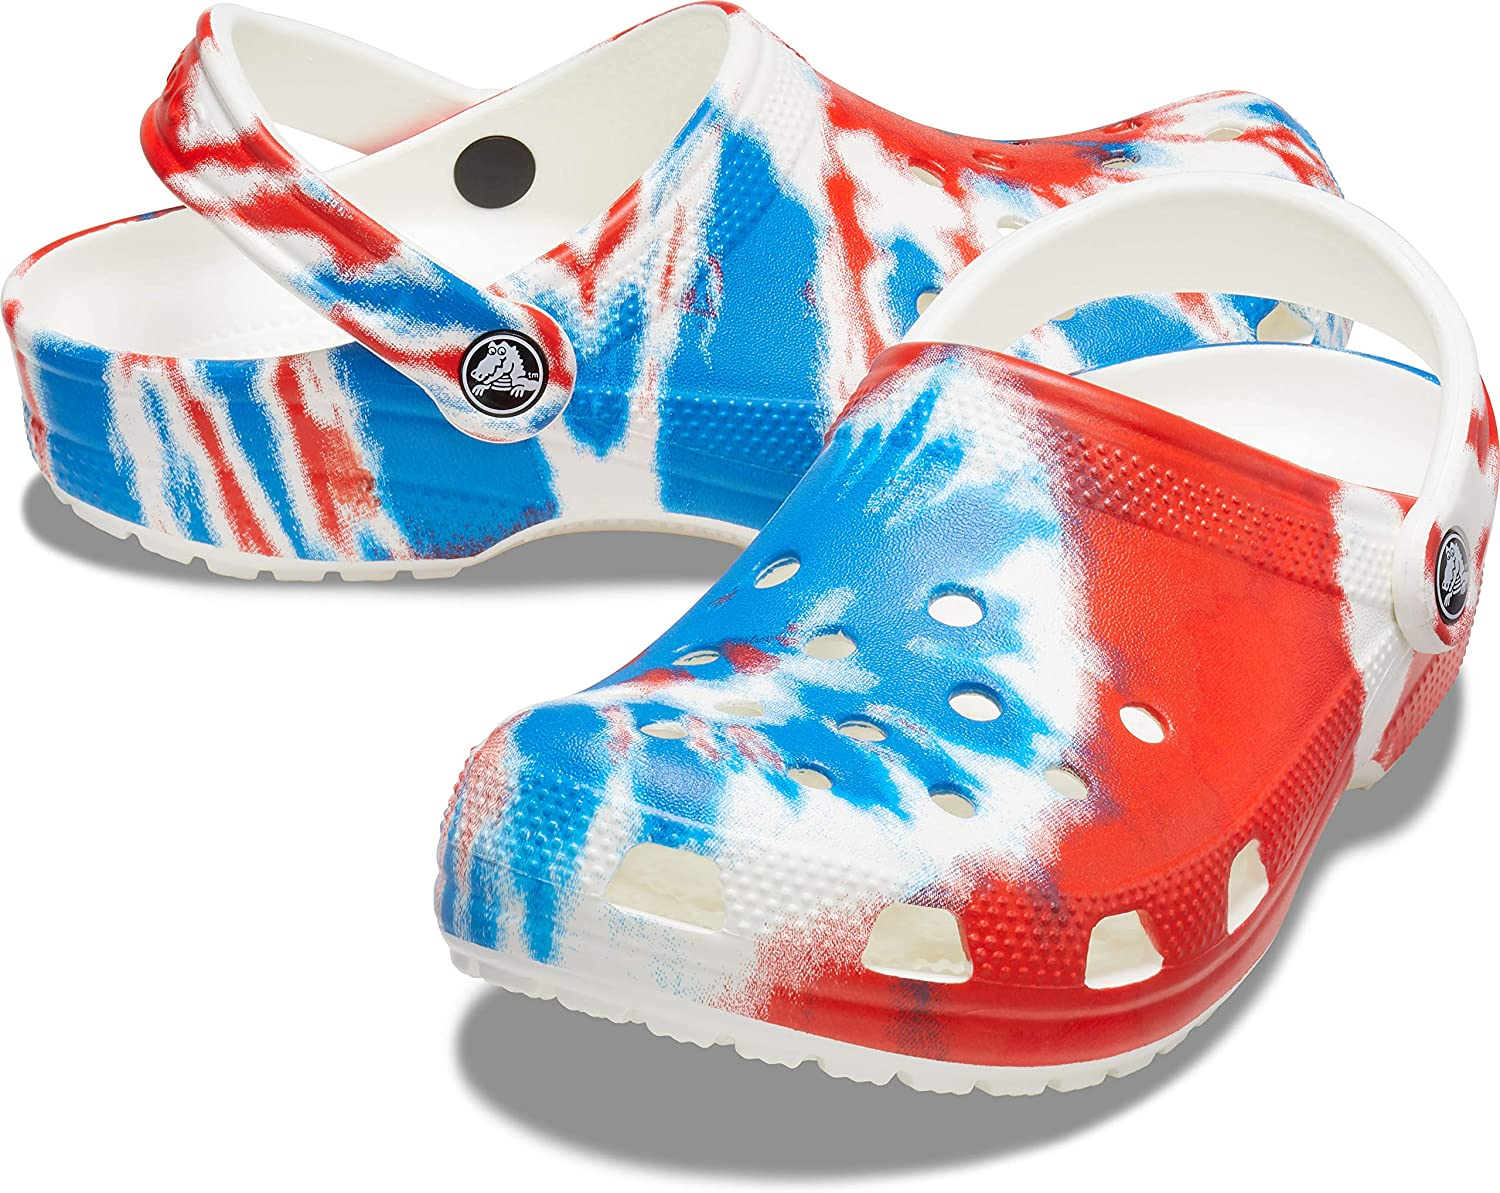 Crocs Unisex Adults/' Mens and Womens Classic Tie Dye Clog Comfortable Slip on Casual Water Shoe